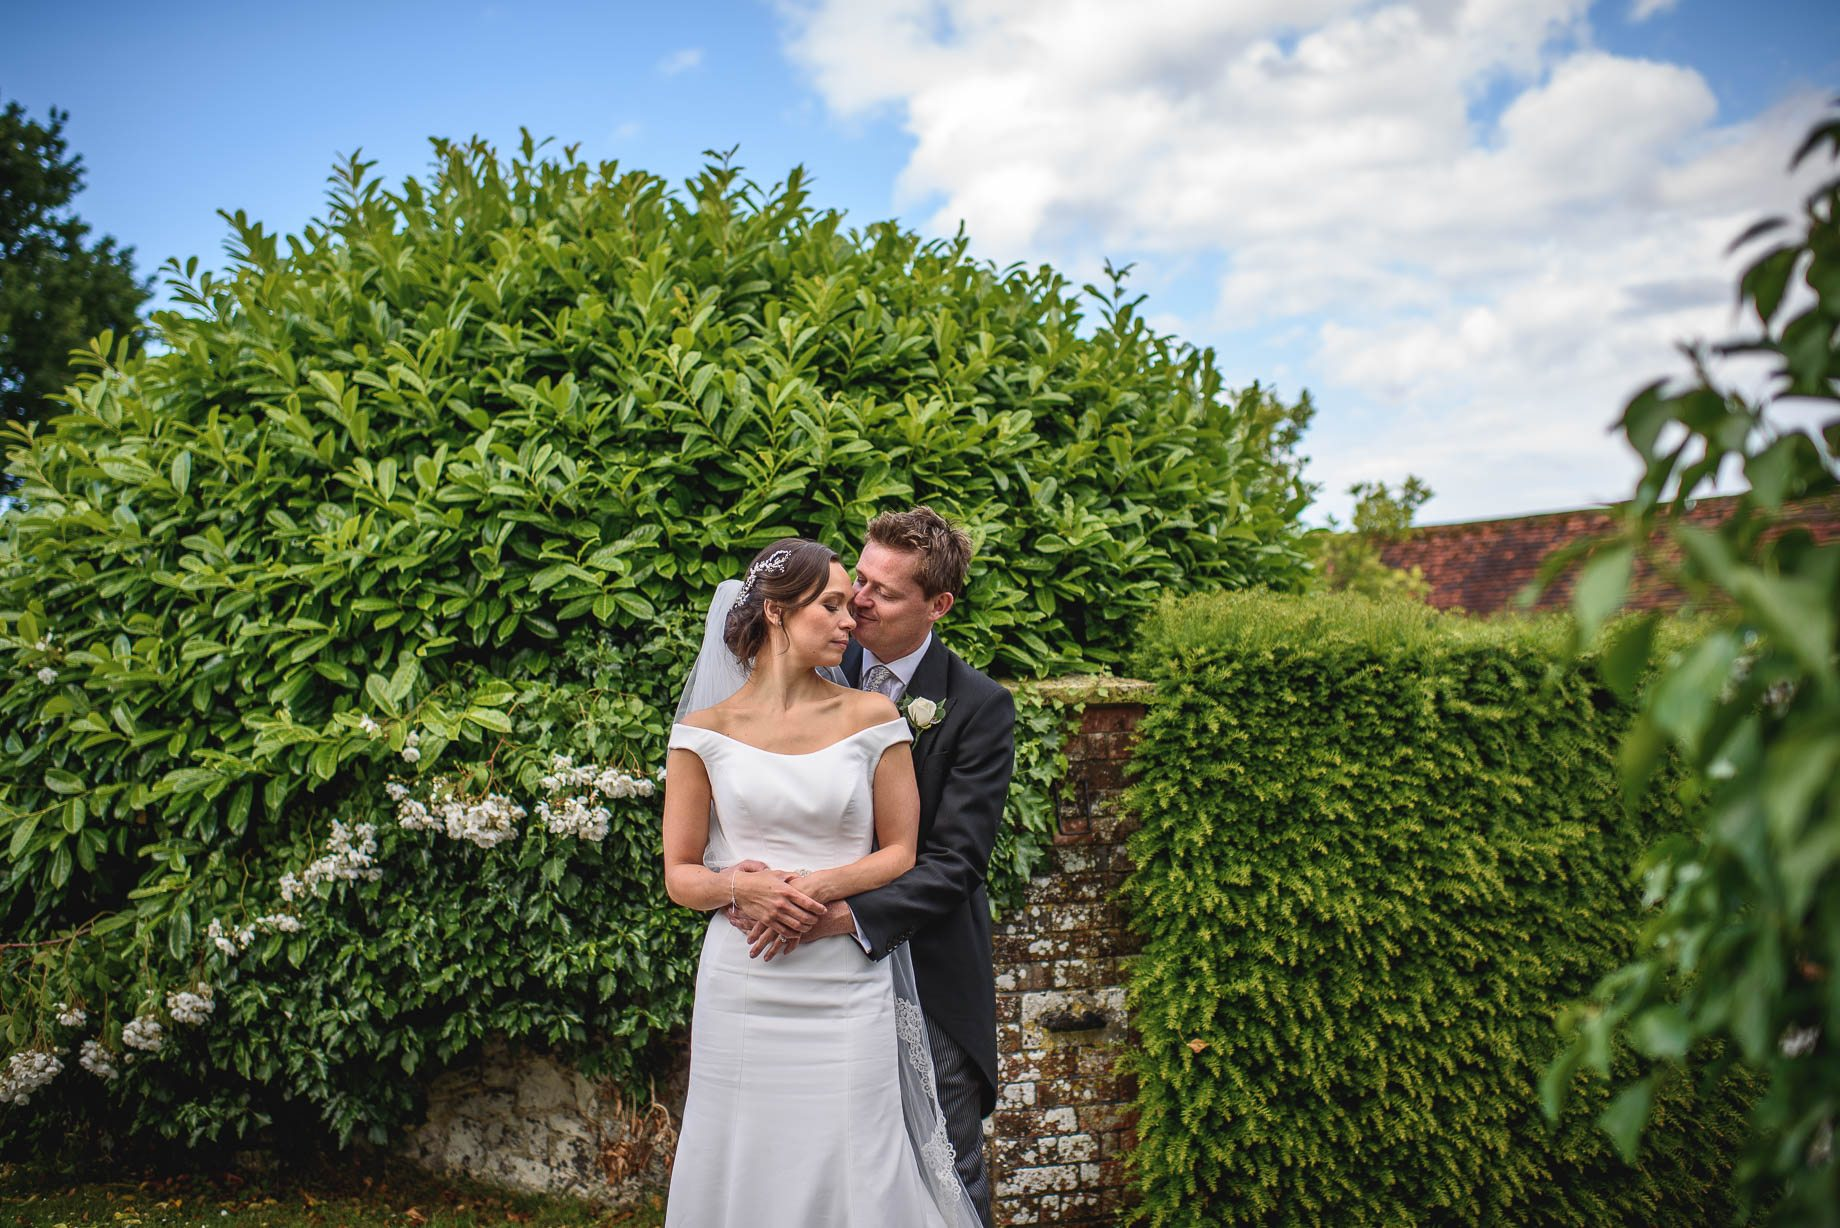 Tithe Barn wedding photography - Jayme and David (139 of 189)